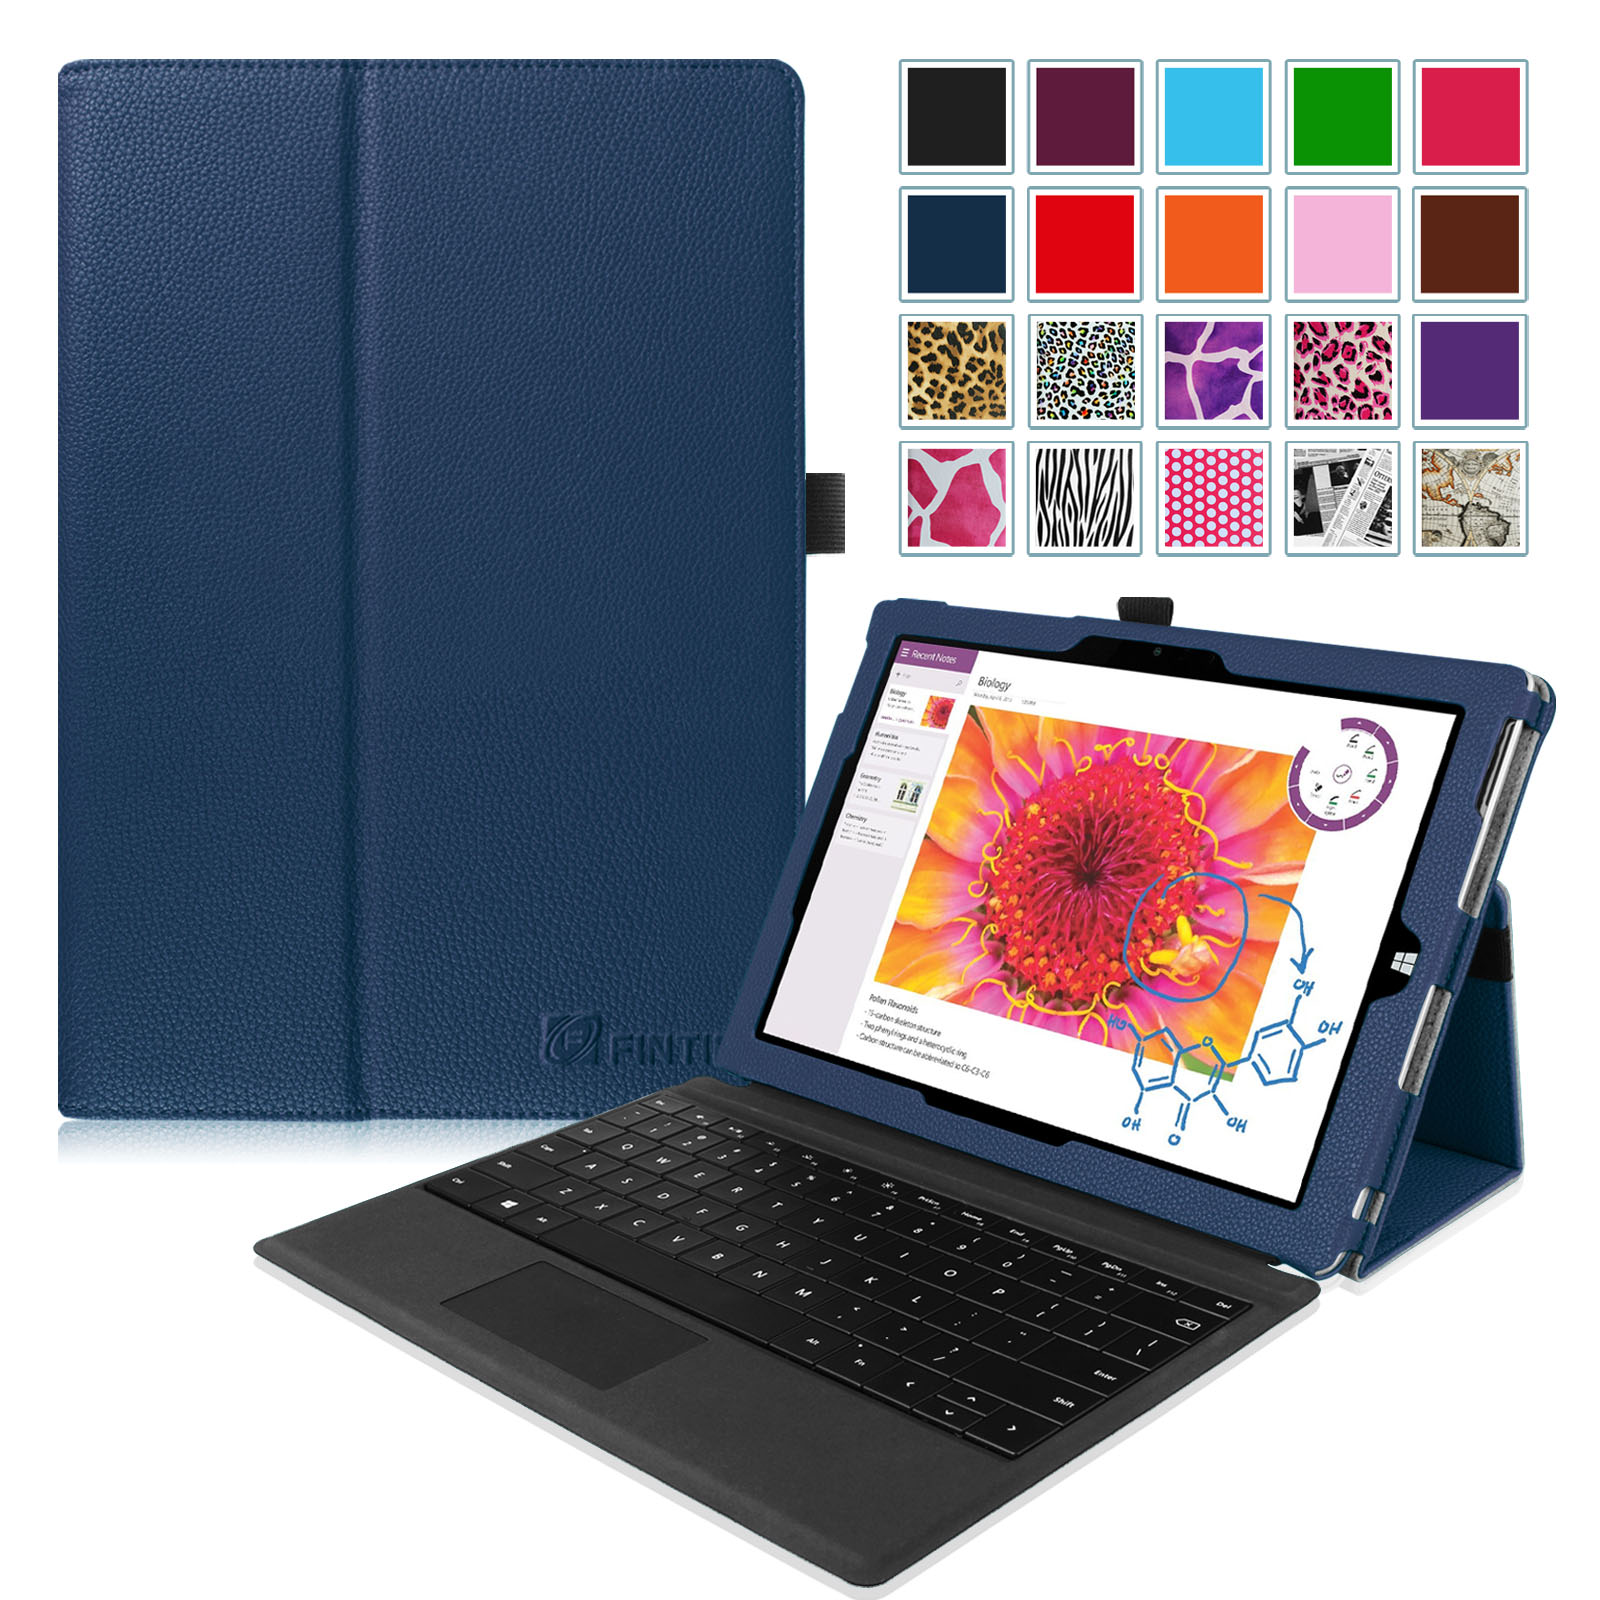 Fintie Case for Microsoft Surface 3 - PU Leather Folio Stand Cover for Microsoft Surface 3 10.8-Inch Tablet, Navy